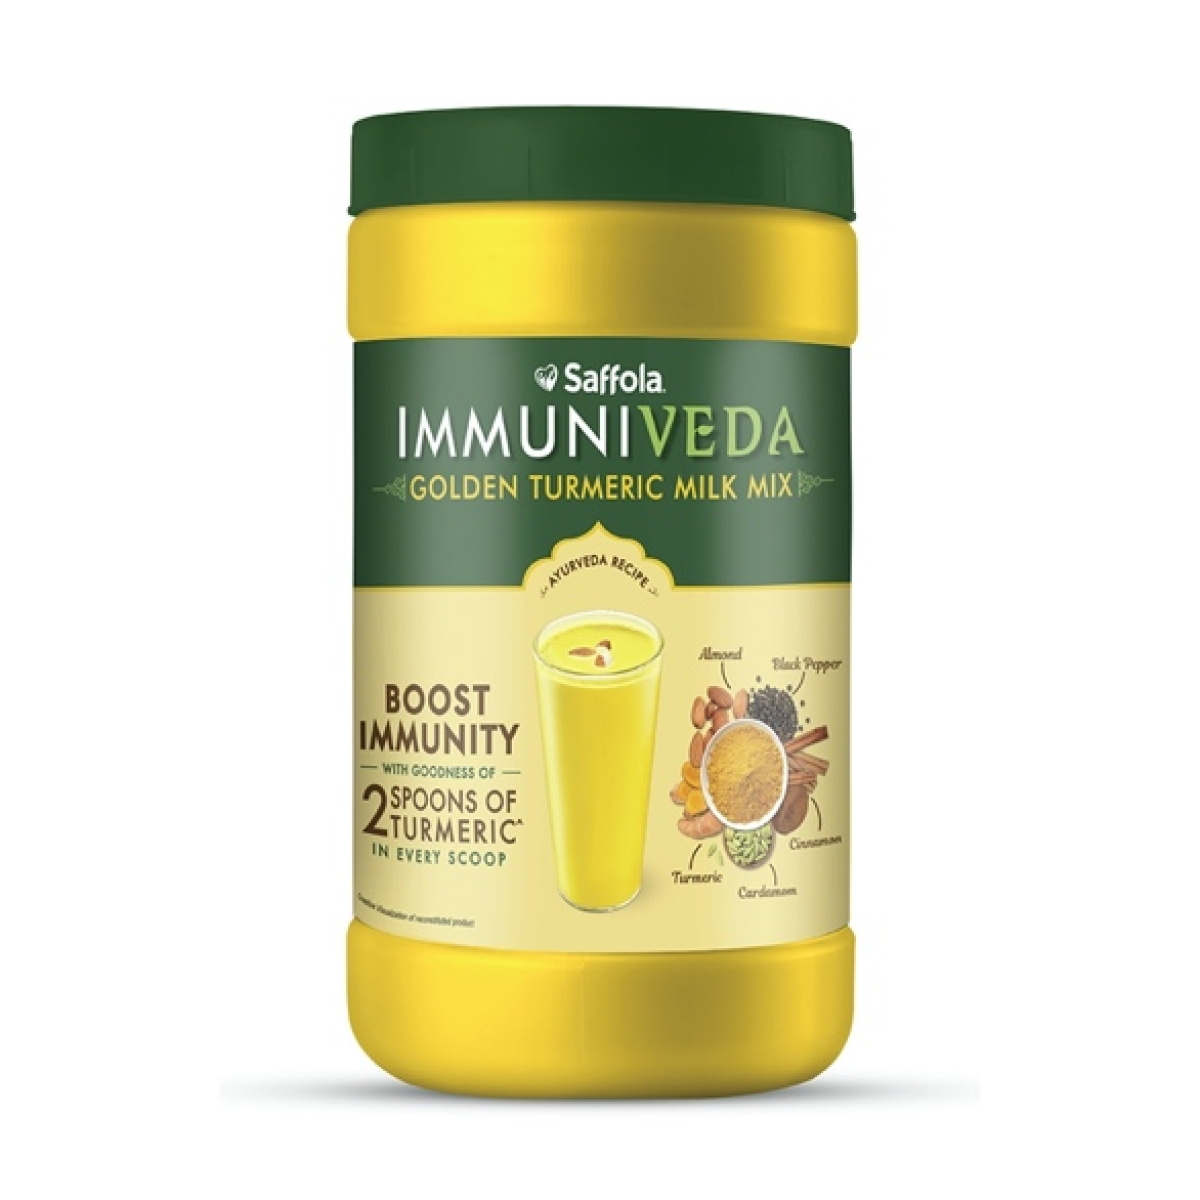 Marico enters the hot 'immunity-boosting' space, launches Saffola kadha and golden turmeric milk mix